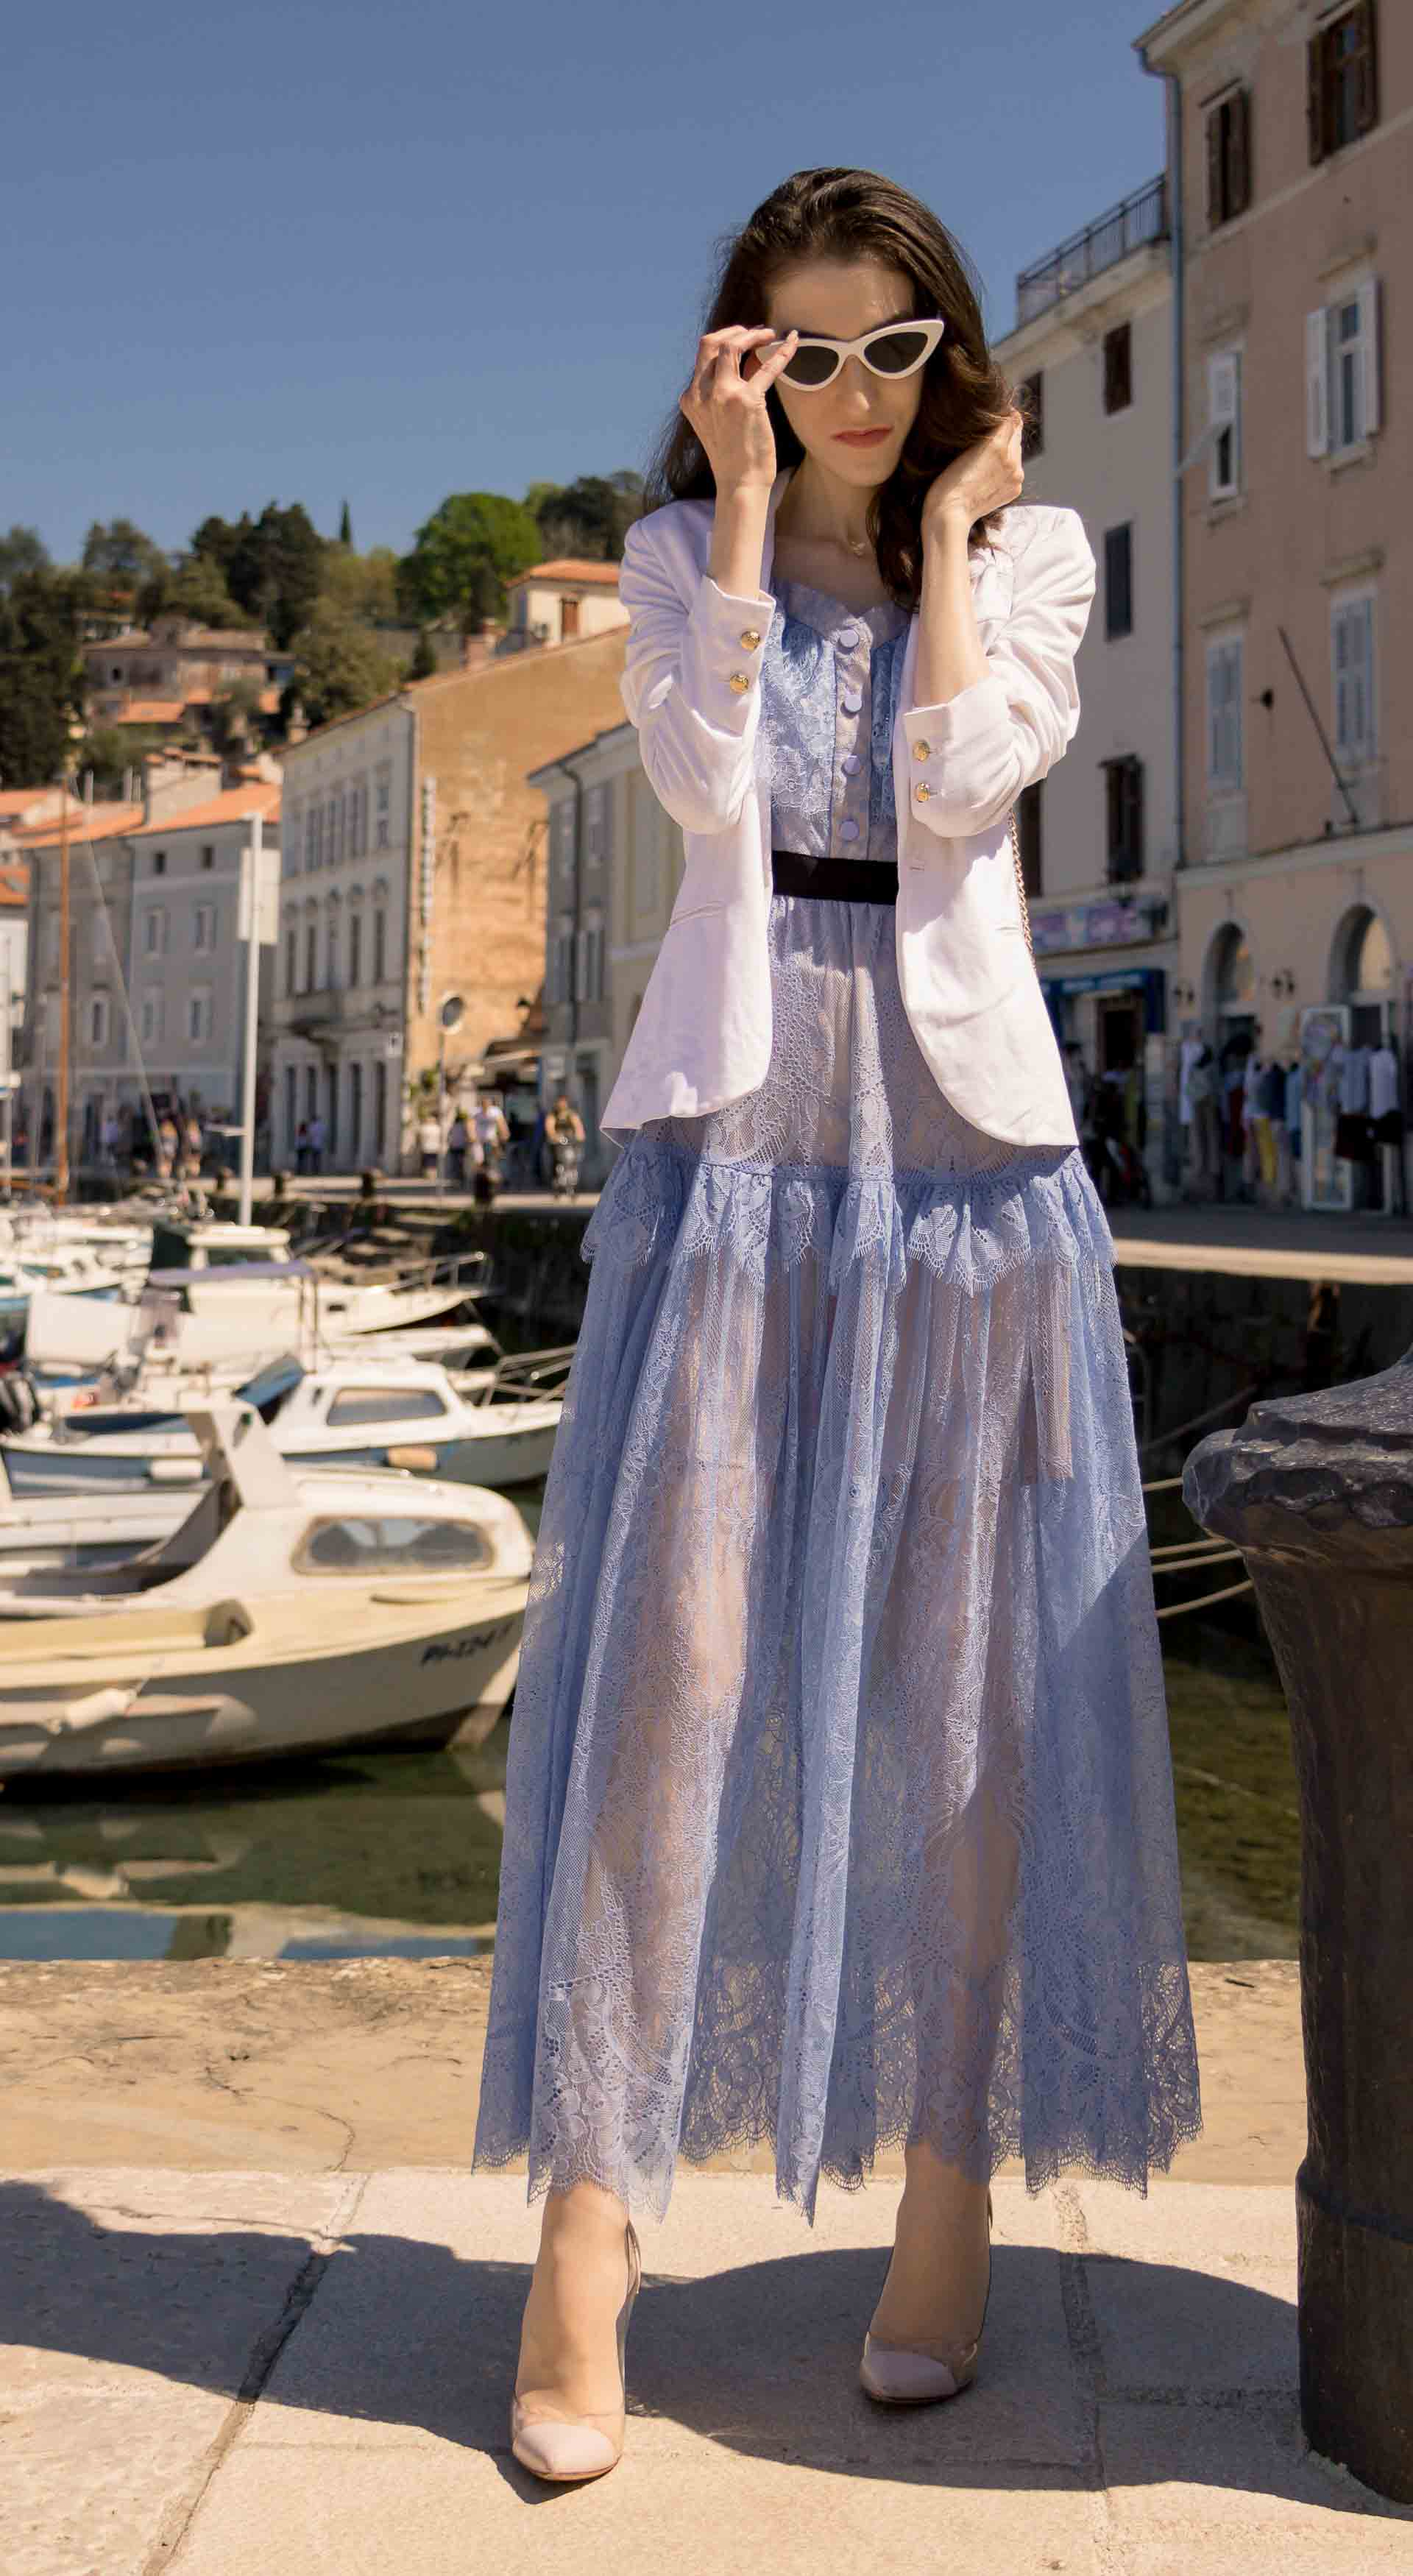 Veronika Lipar Fashion Blogger of Brunette from Wall Street dressed in Self-Portrait blue lace midi dress, white single button blazer, blush Gianvito Rossi plexi pumps, white shoulder bag, Lespecs white cat eye sunglasses while standing in the port in Piran